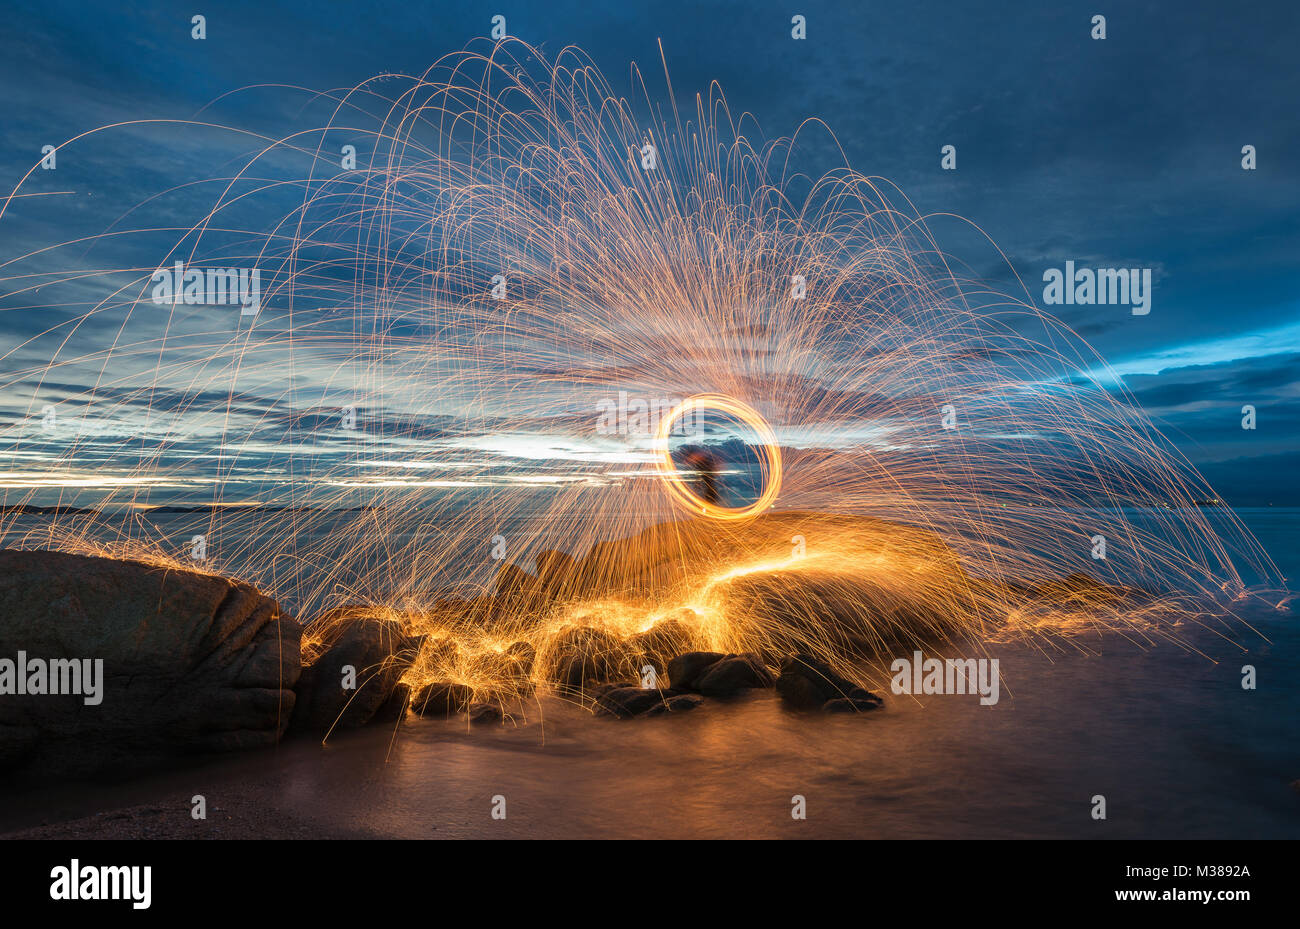 Amazing steel wool coast the sea on the beach in sunset time. Stock Photo